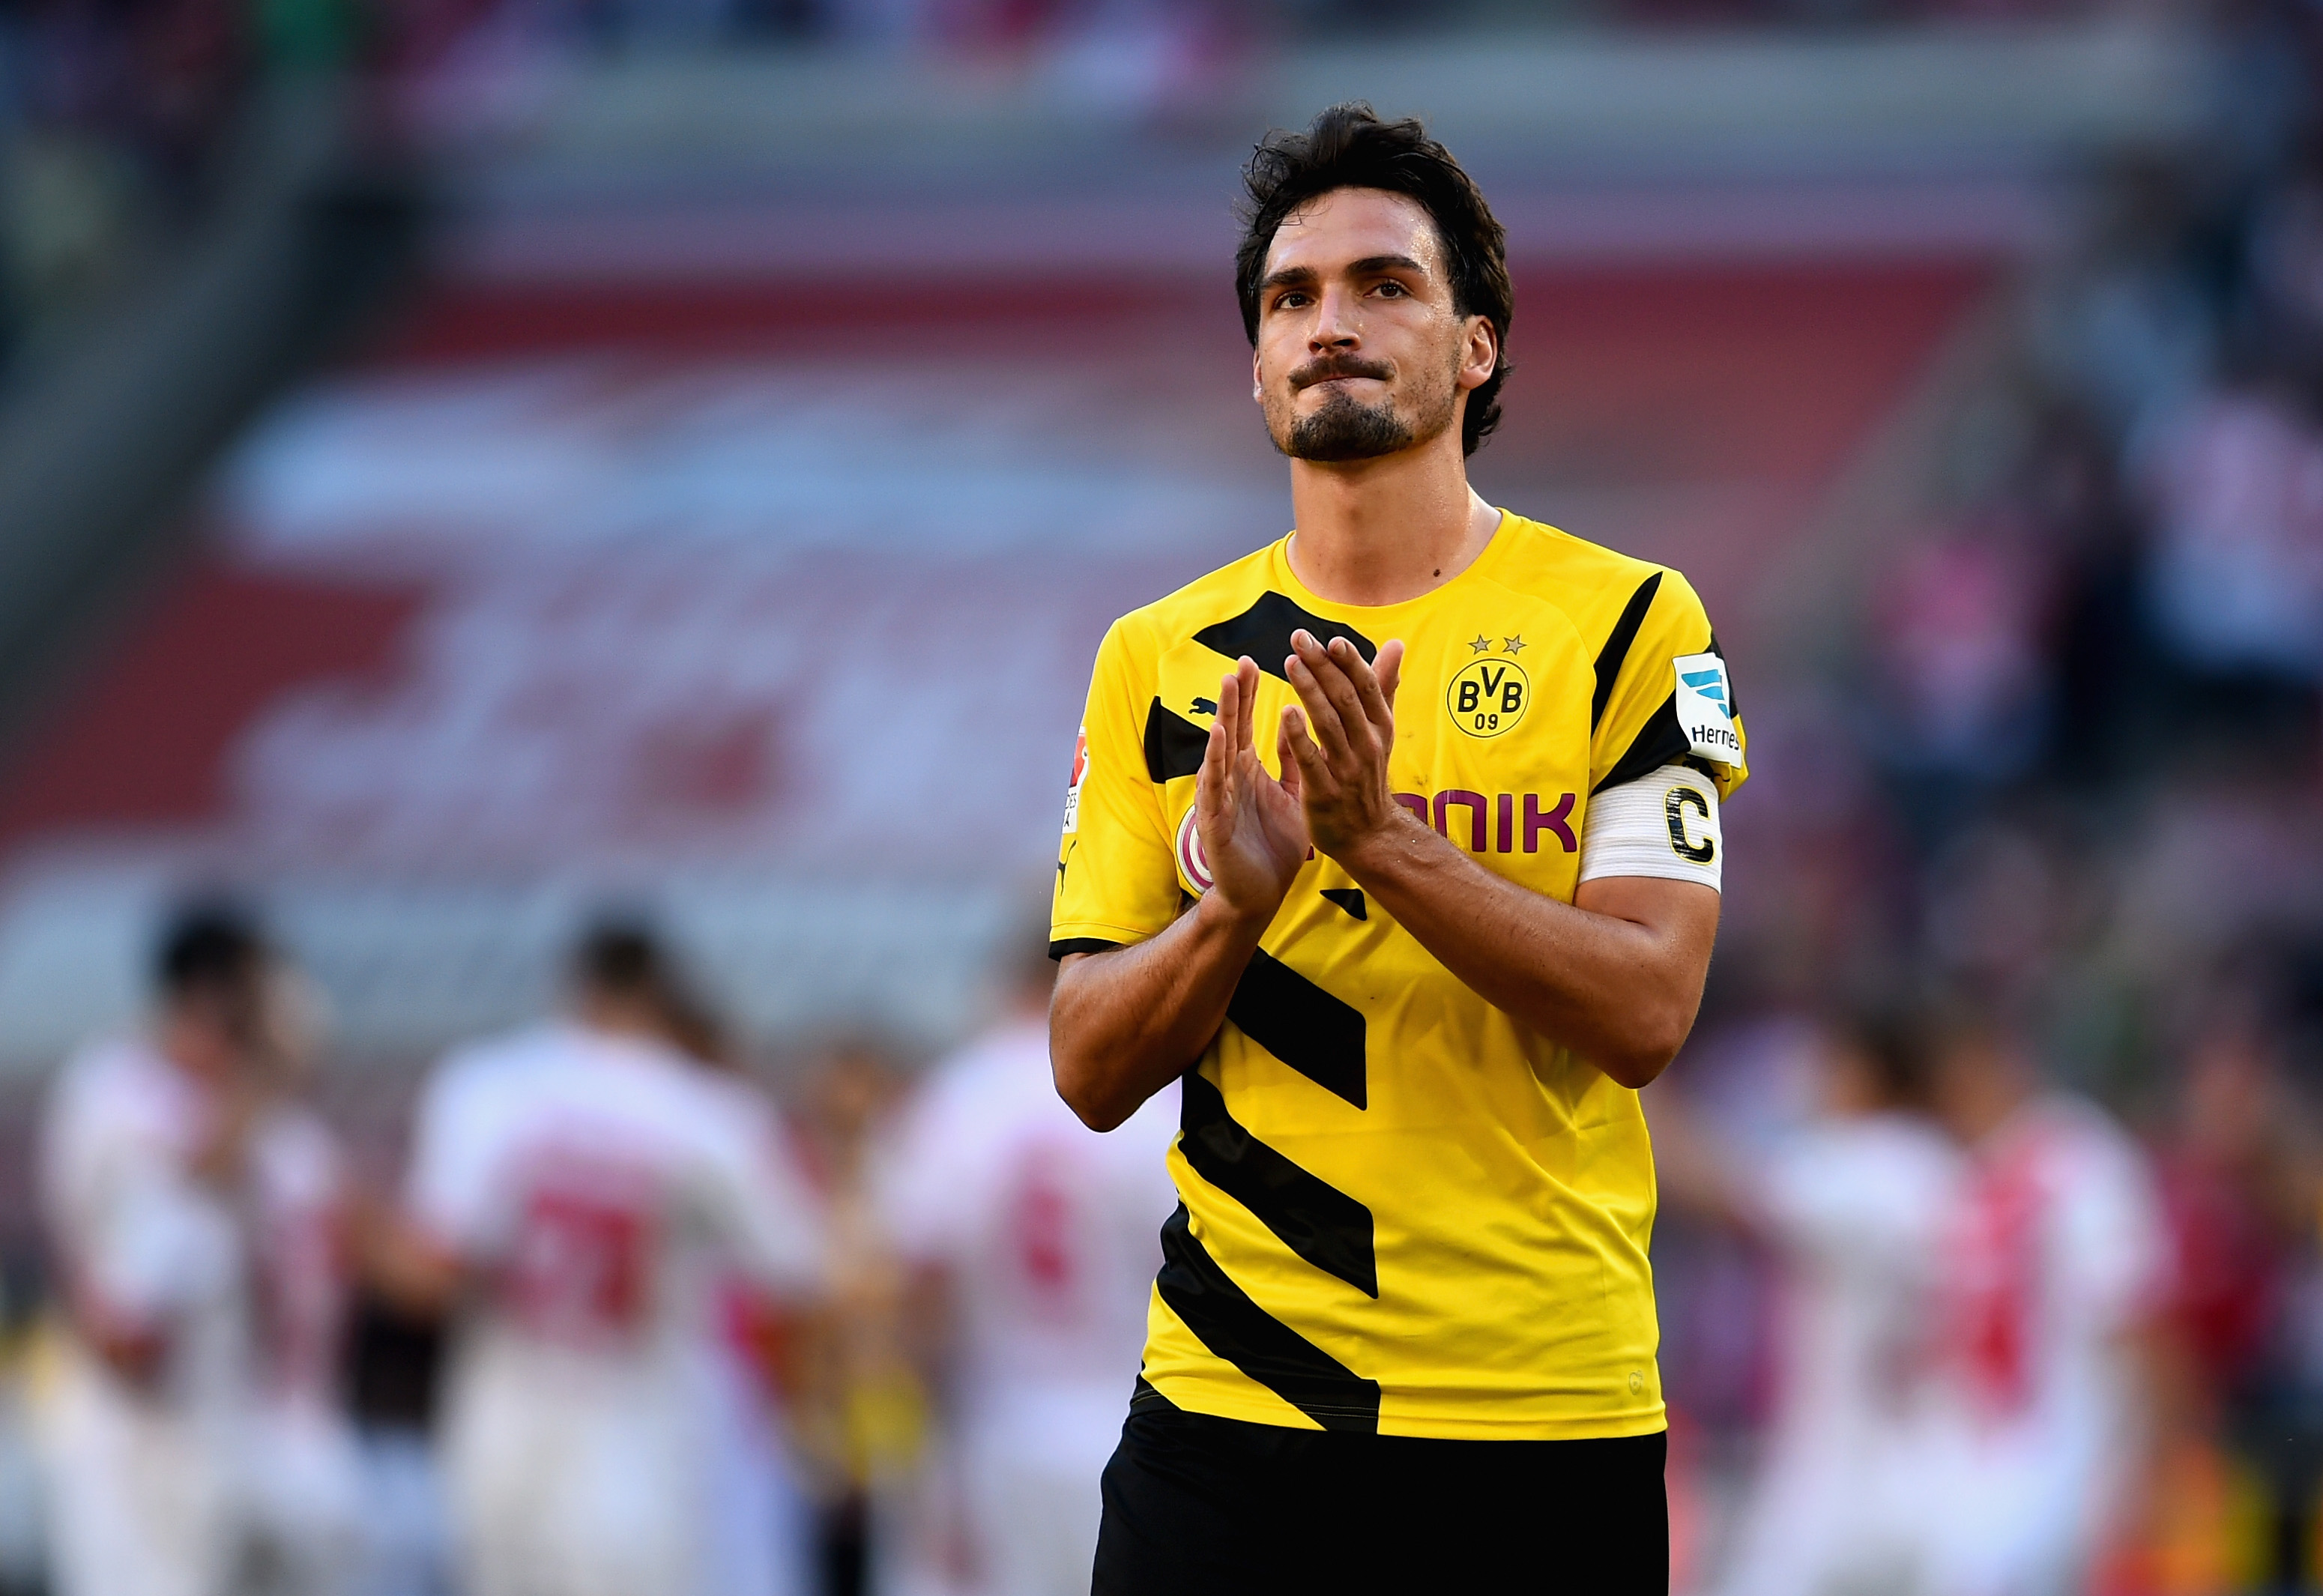 COLOGNE, GERMANY - OCTOBER 18:  Mats Hummels of Borussia Dortmund shows his frustration after the Bundesliga match between 1. FC Koeln and Borussia Dortmund at RheinEnergieStadion on October 18, 2014 in Cologne, Germany.  (Photo by Dennis Grombkowski/Bongarts/Getty Images)